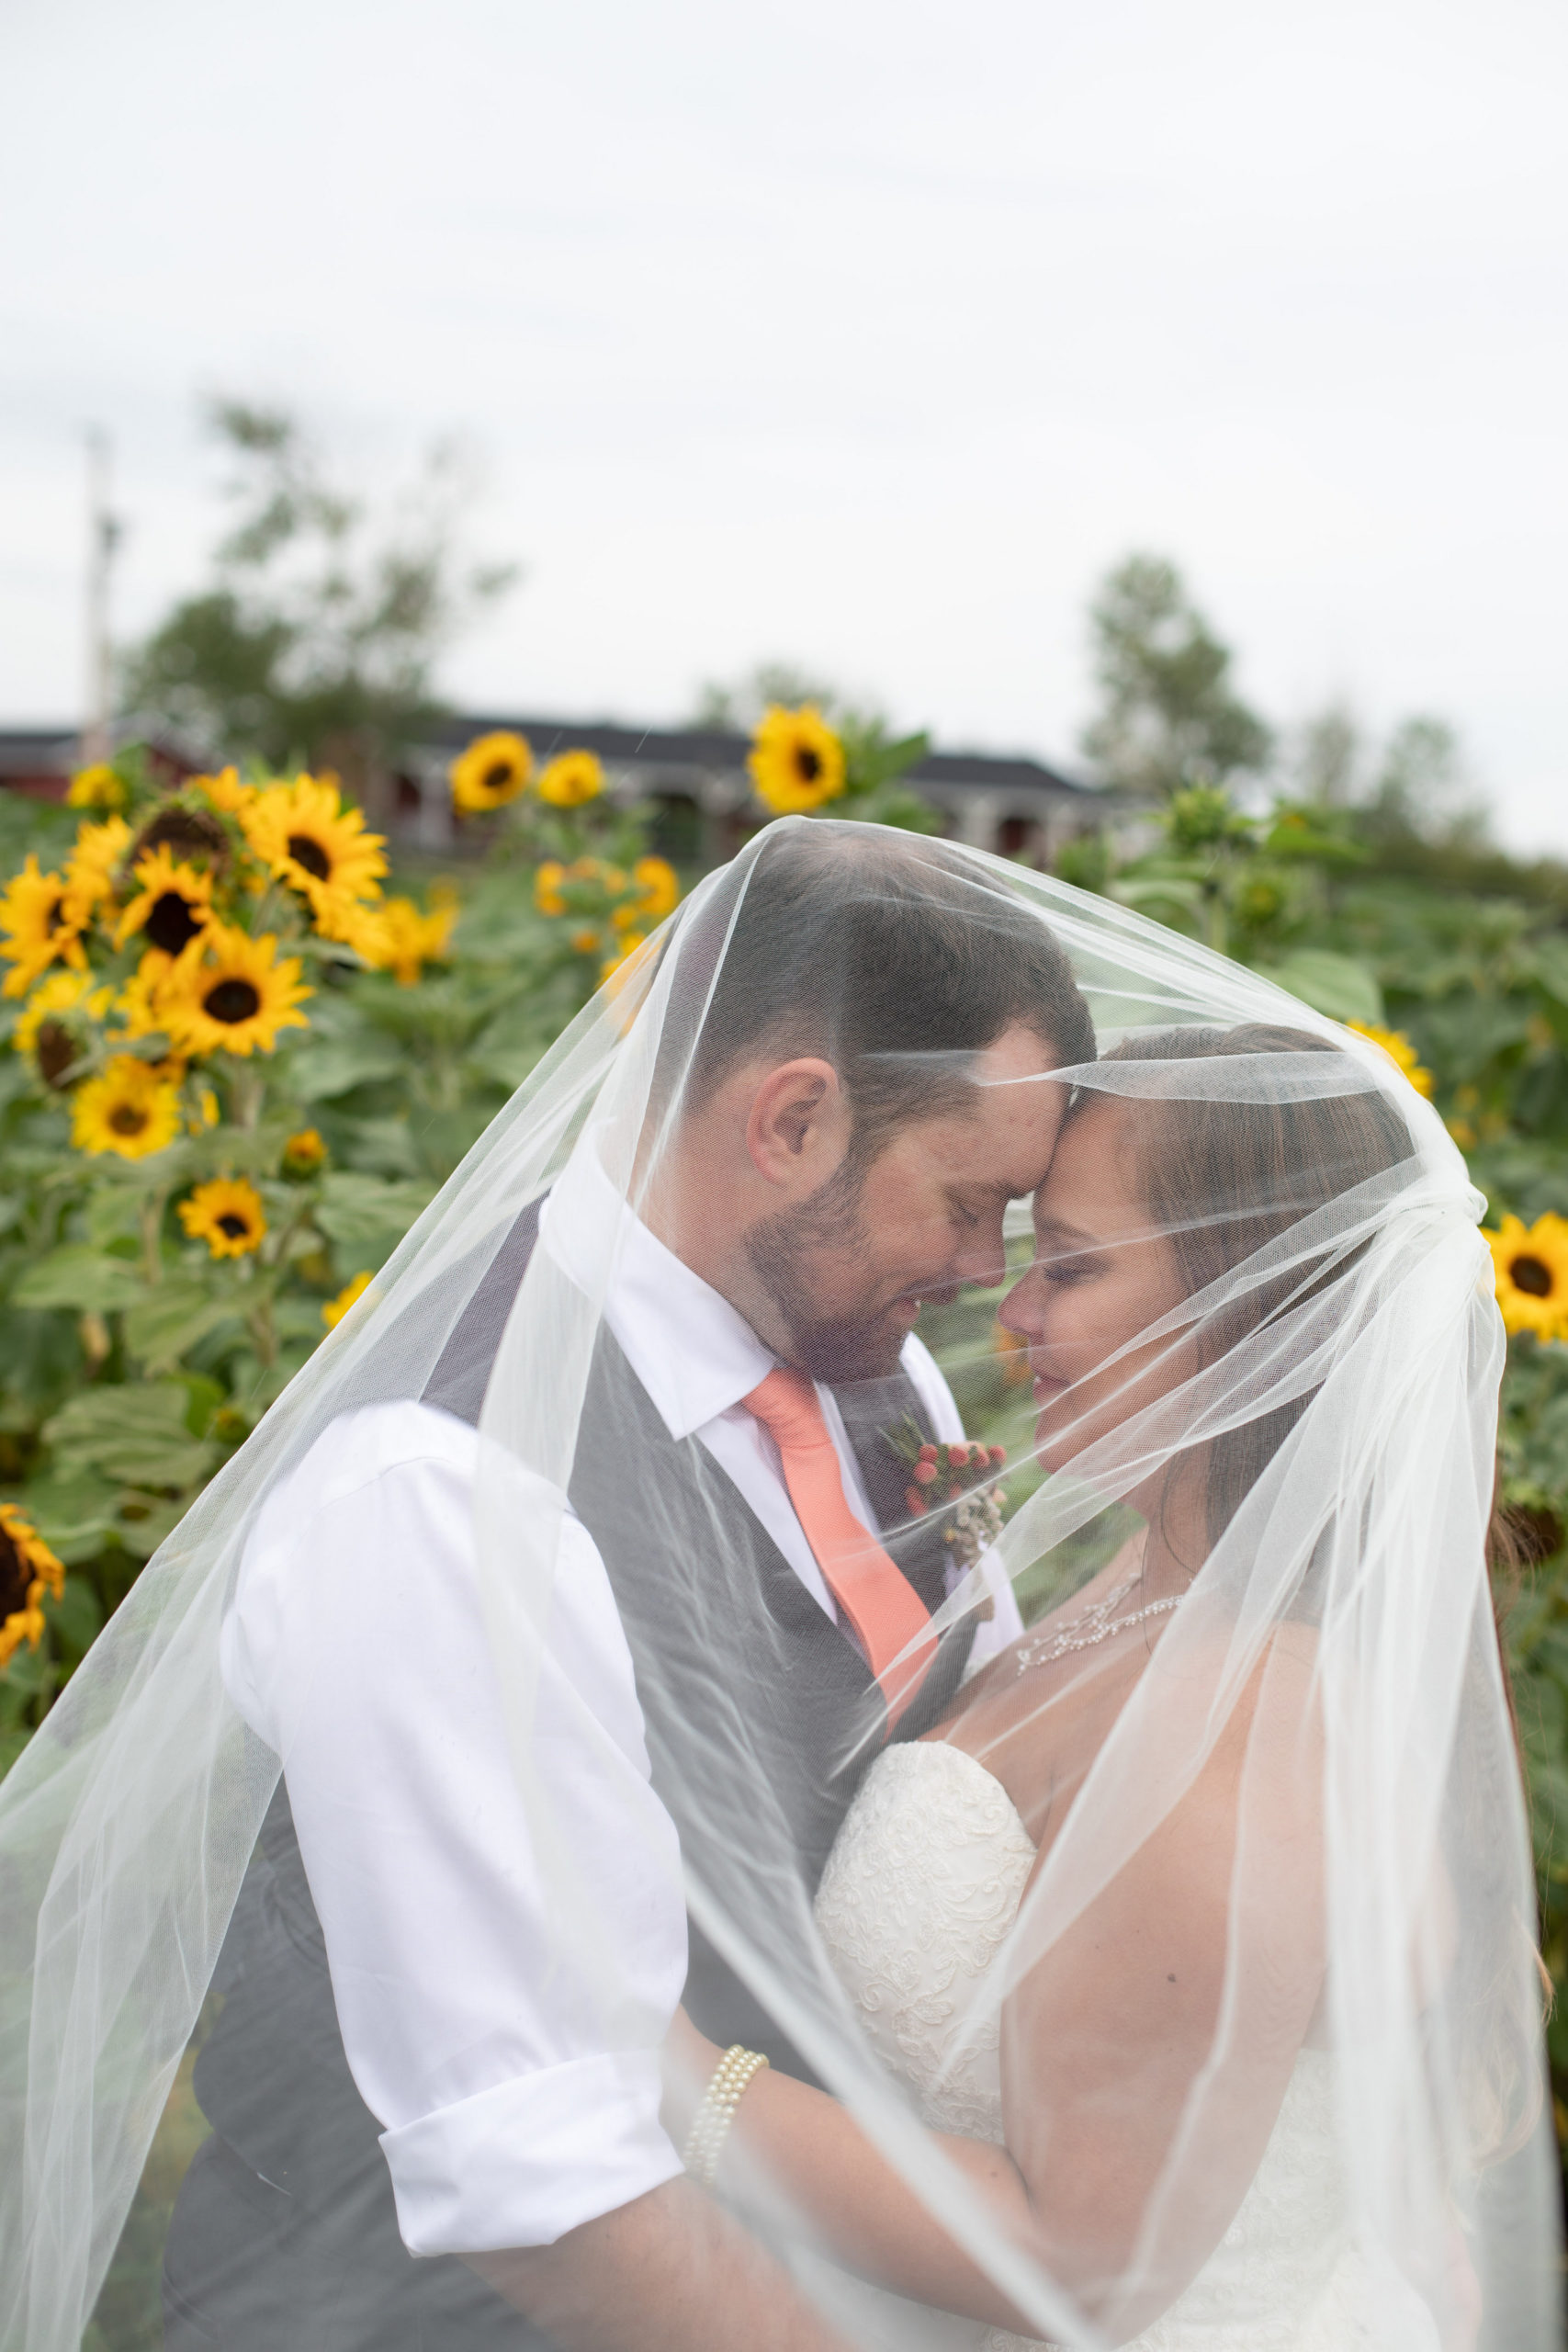 Bright yellow sunflowers surround a bride and groom as they stand in the garden. The brides veil covers them both and the grooms coral tie makes a pop against the sunflowers.